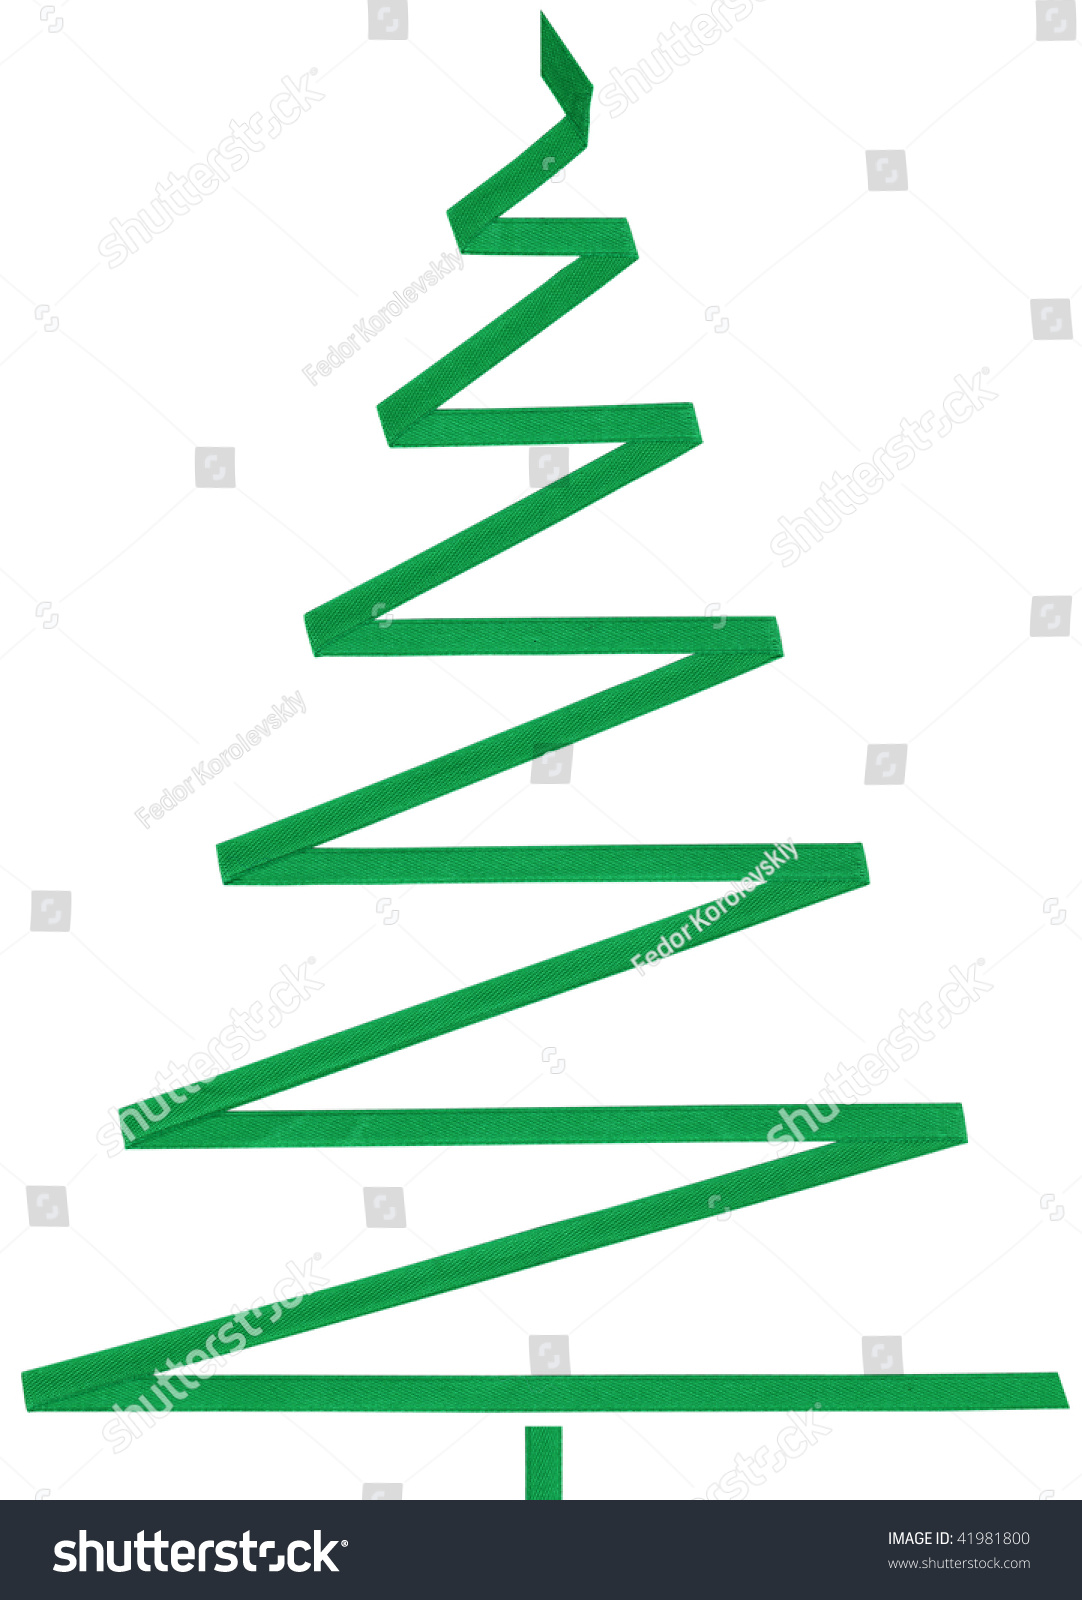 Symbol green christmas furtree band stock photo 41981800 symbol of a green christmas fur tree from a band biocorpaavc Image collections